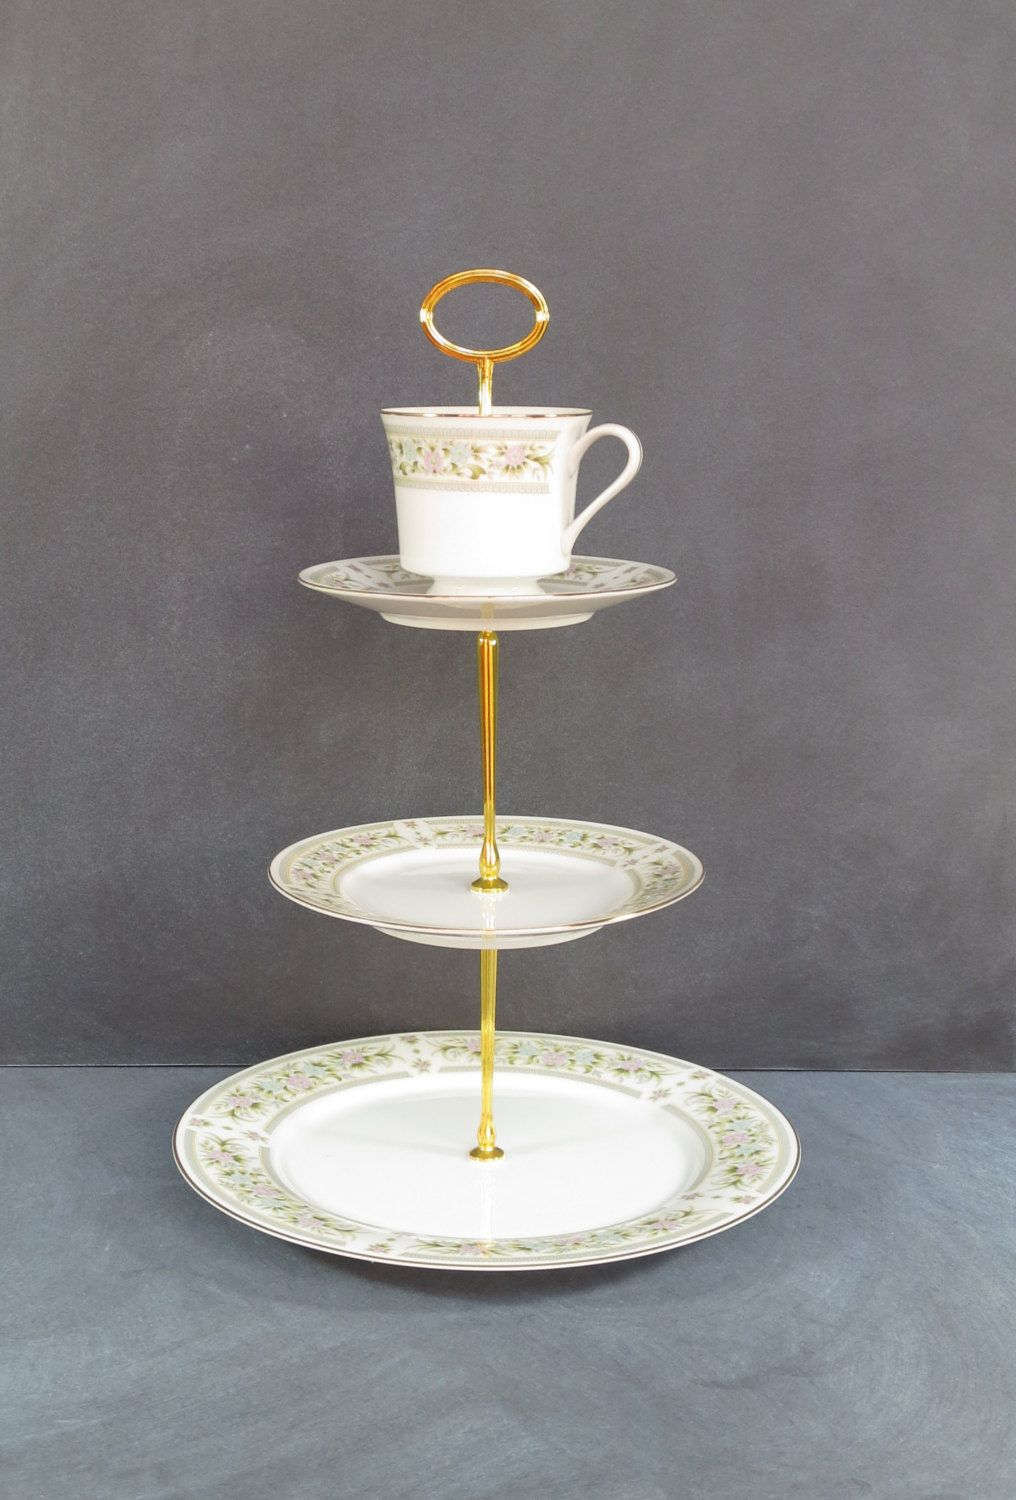 Teacup Teastand 3 Tier Cake Stand High Tea Plate Stand | Baby Bridal Wedding & Tiered Cake Plate 3 Tier Teacup Cake Stand High Tea Plate Stand ...